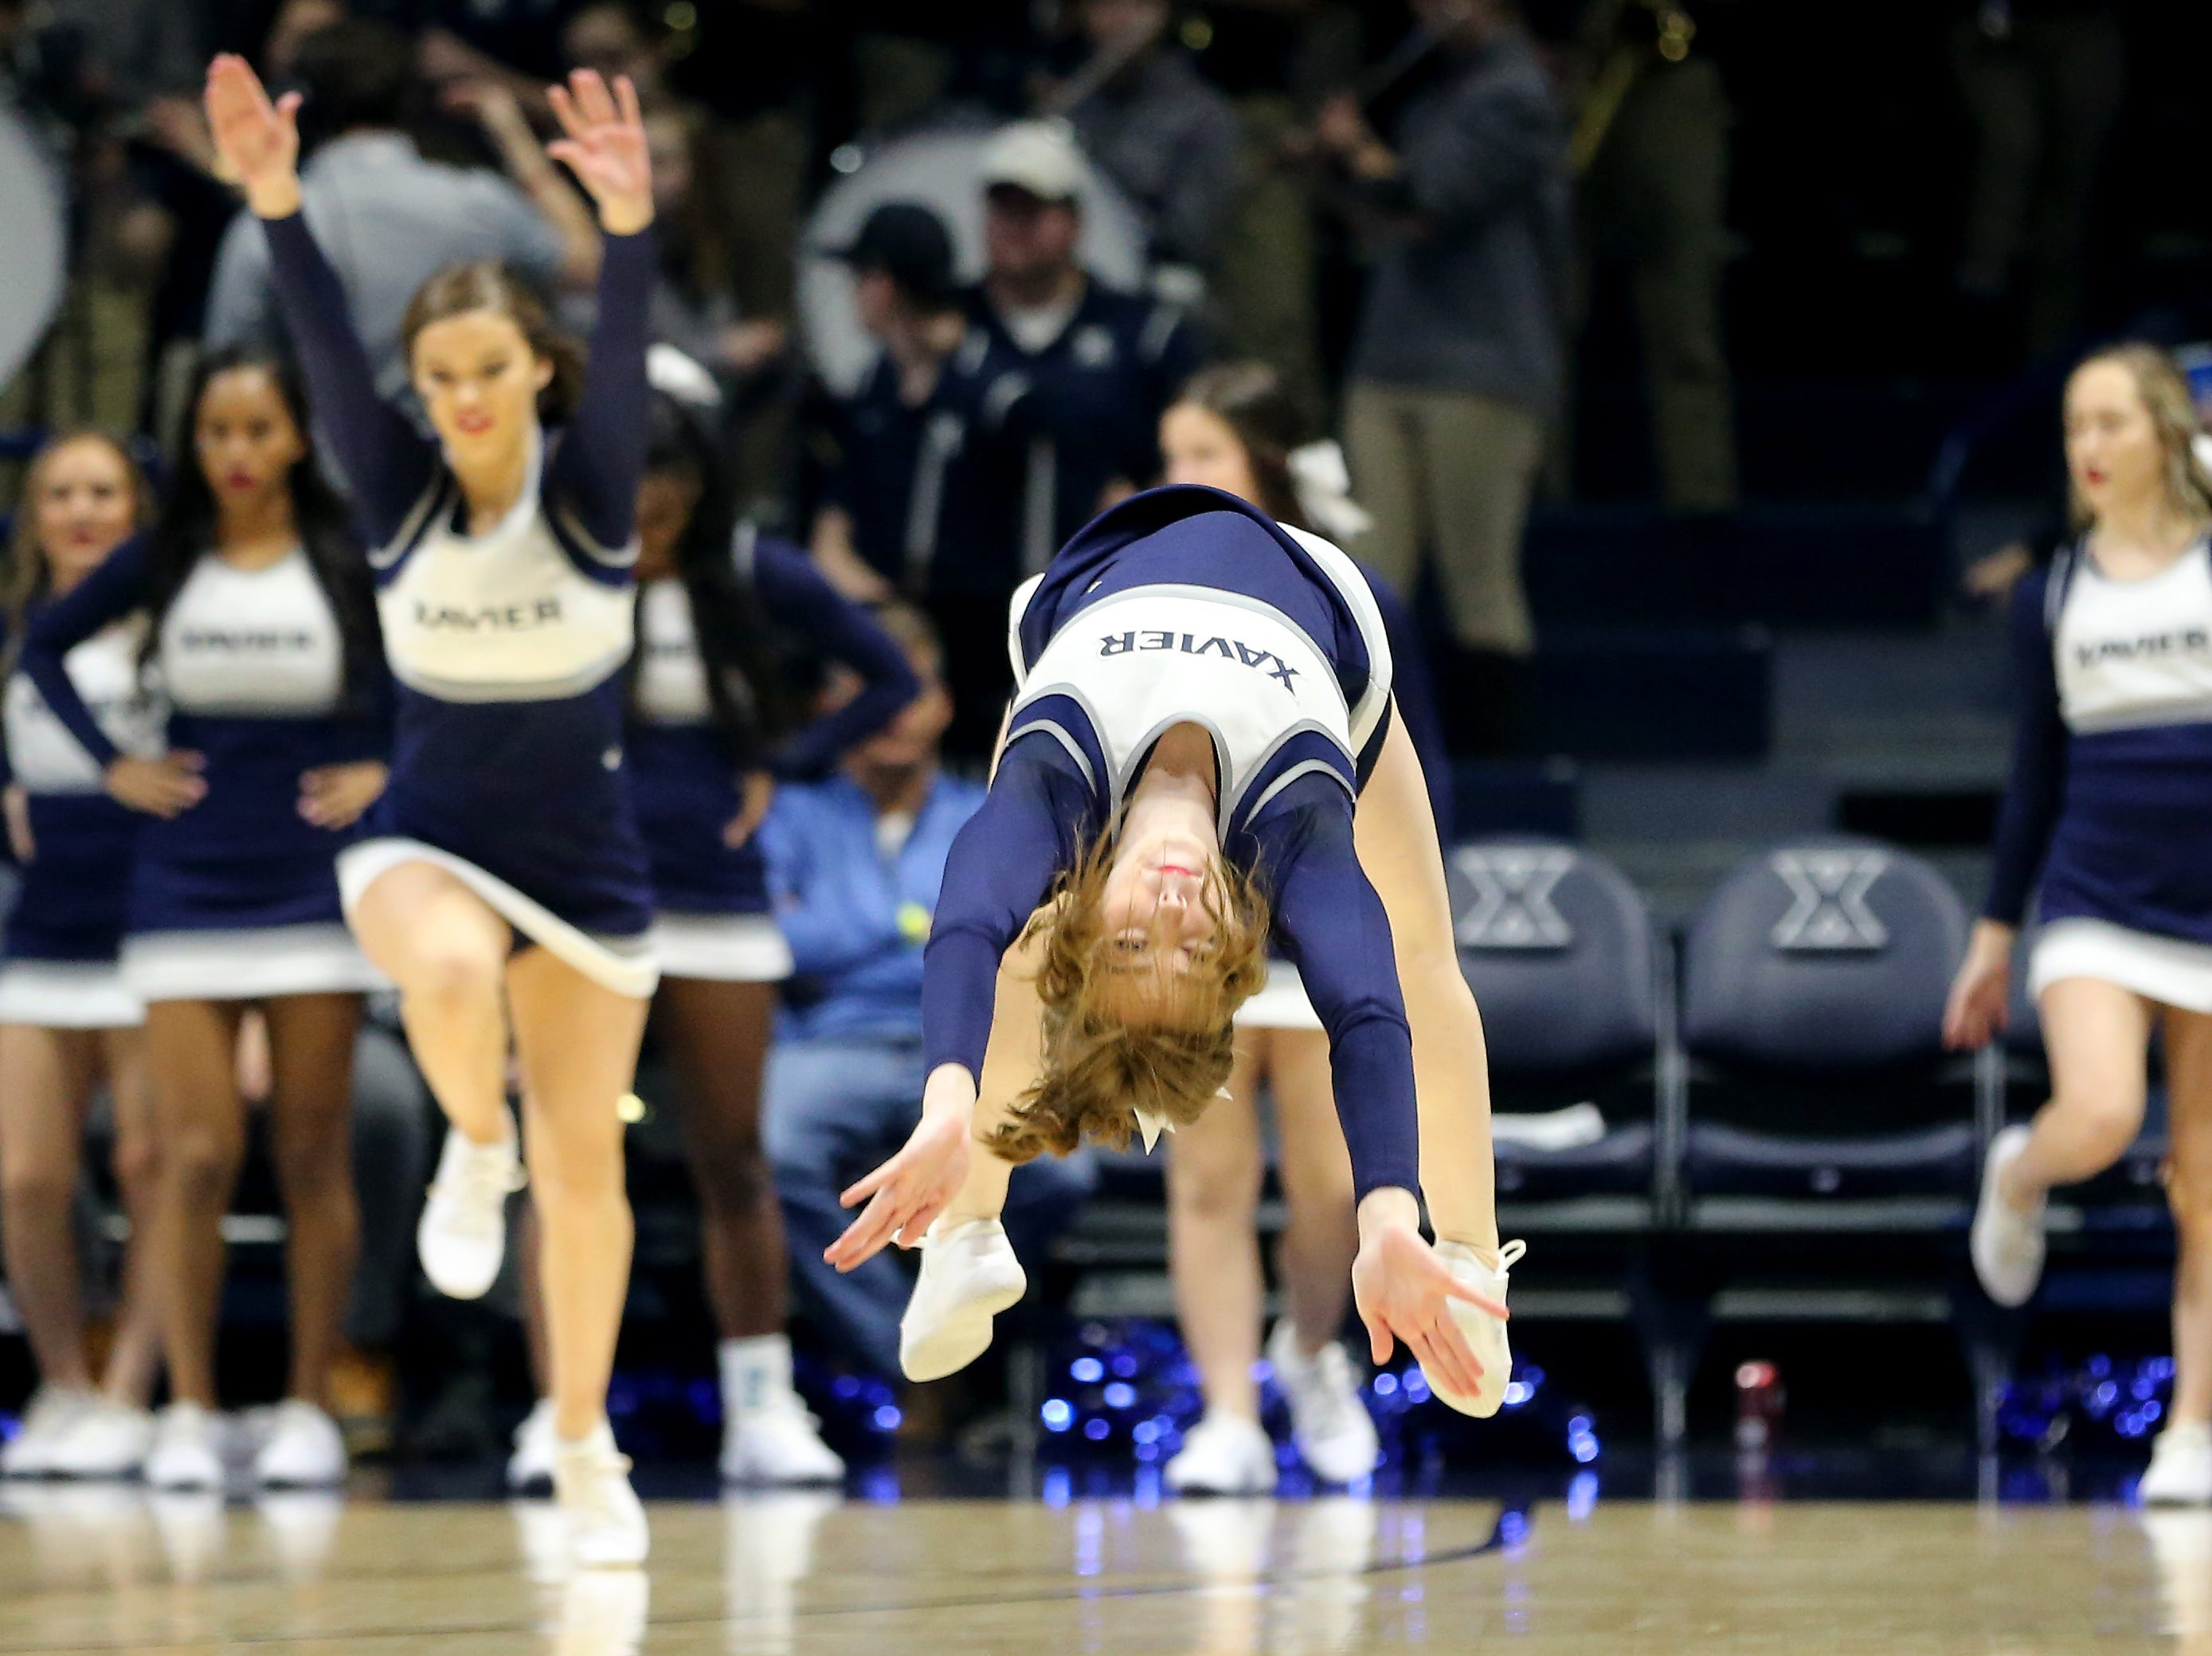 A Xavier Musketeers cheerleader performs during a timeout in the second half of an NCAA college basketball game against the Butler Bulldogs, Sunday, Jan. 13, 2019, at Cintas Center in Cincinnati. Xavier Musketeers won 70-69.